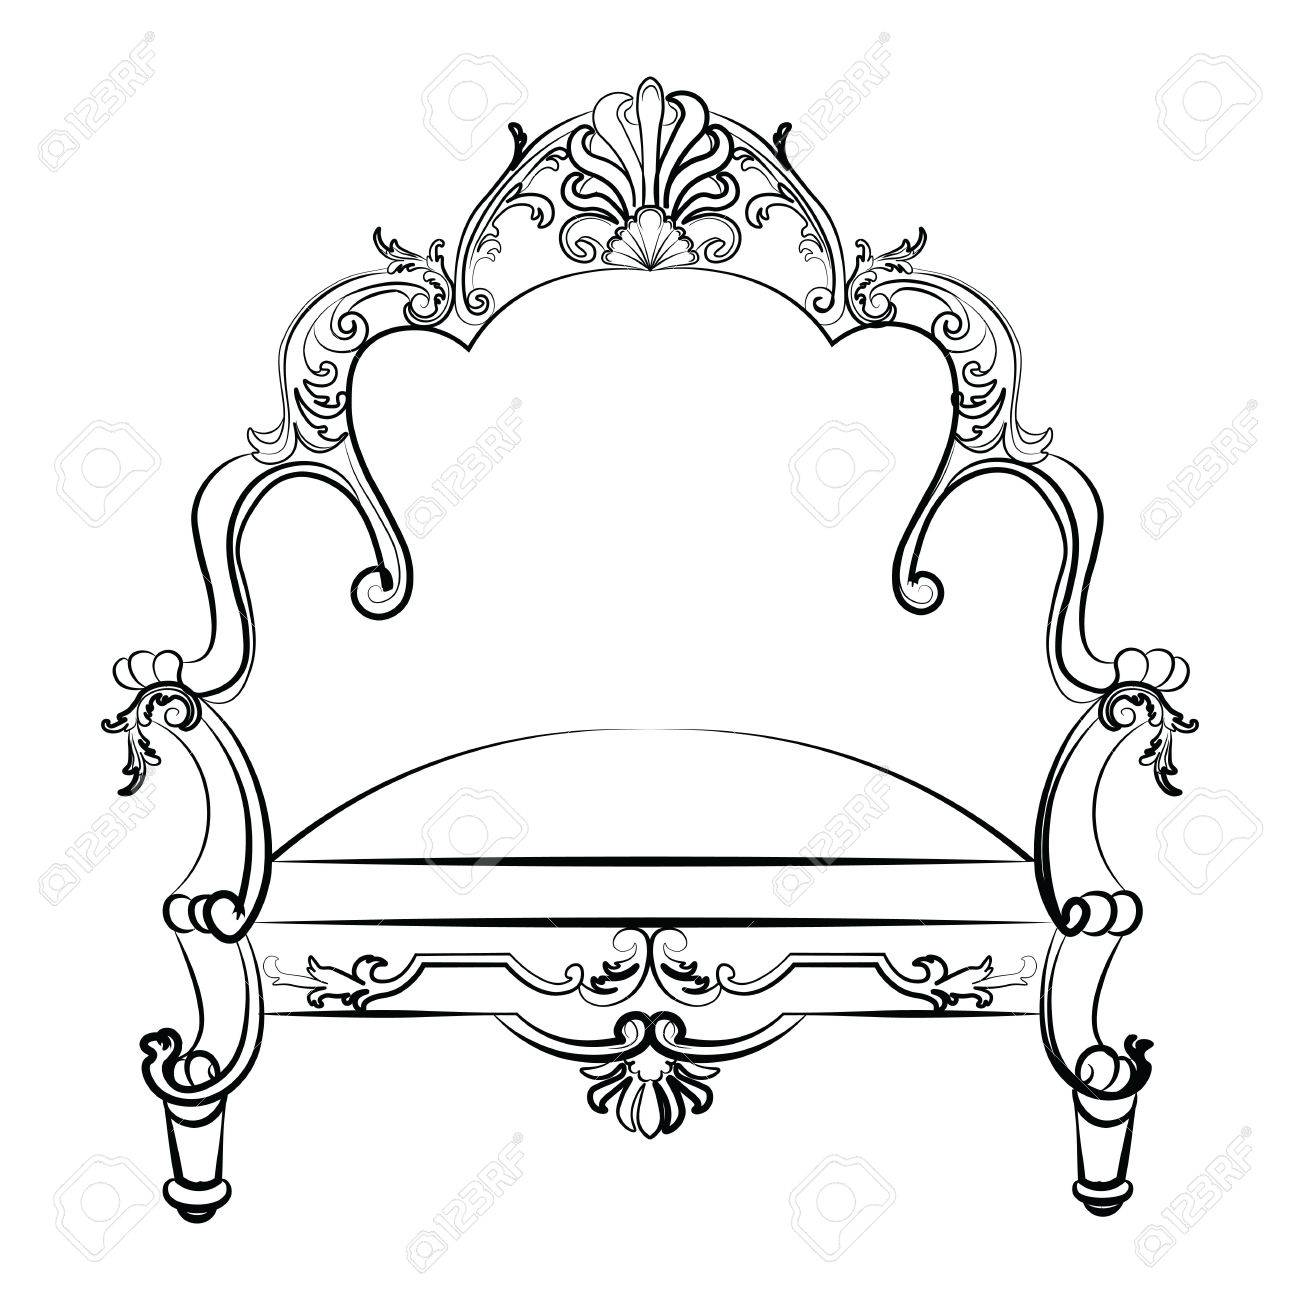 Royal Imperial Armchair In Rococo Style With Damask Luxurious Ornaments.  Vector Stock Vector   58507761